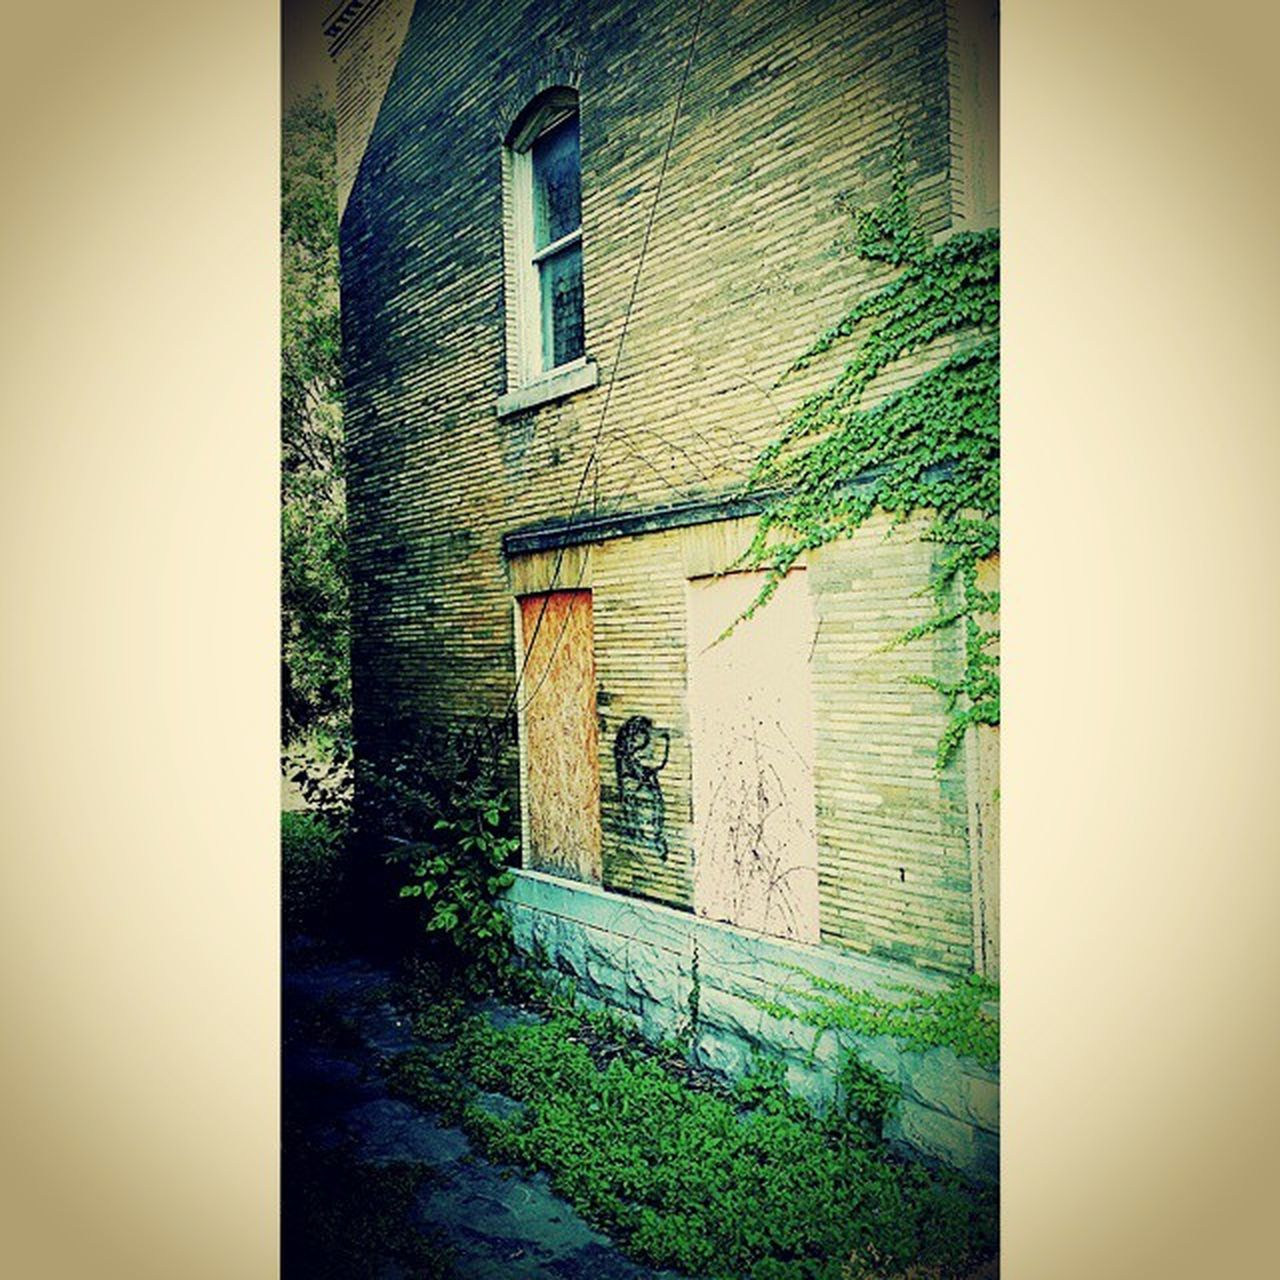 Oldstompinggrounds TheHood Feeling Thankful GratefulToBeAlive Recoveryispossible Evil Lurks Bad Places Abandoned Buildings